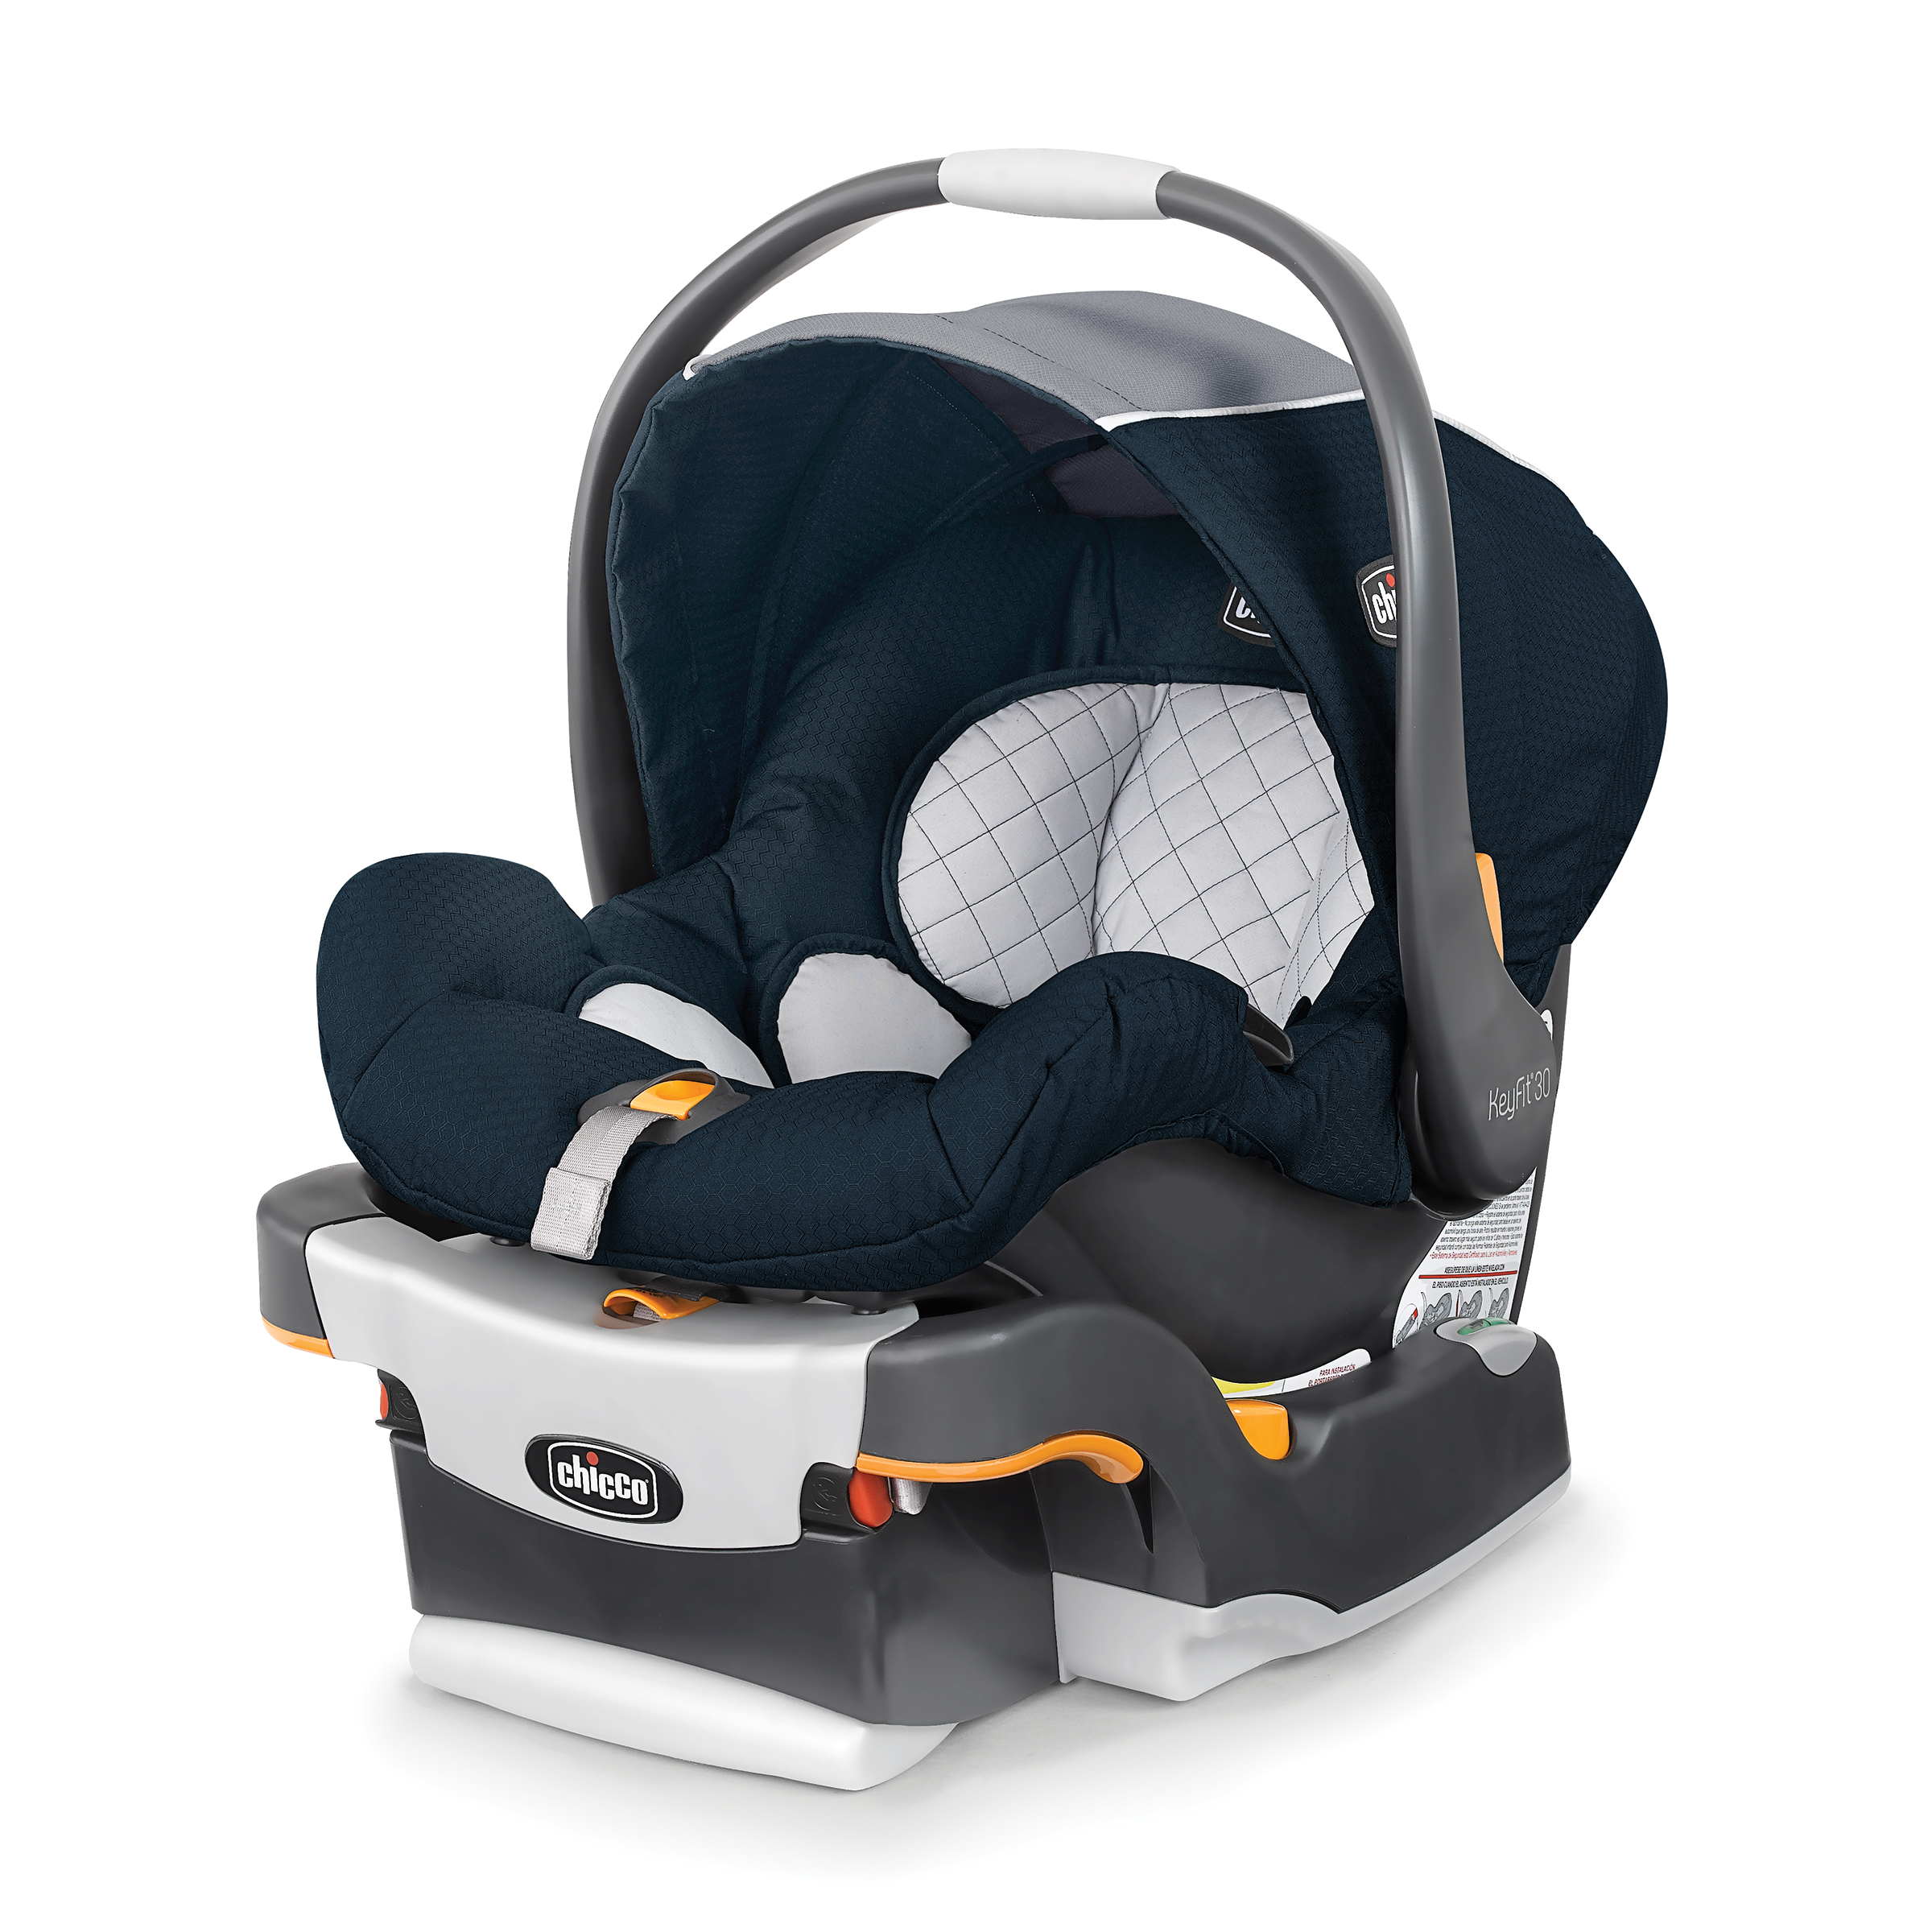 KeyFit 30 Infant Car Seat - Regatta in Regatta